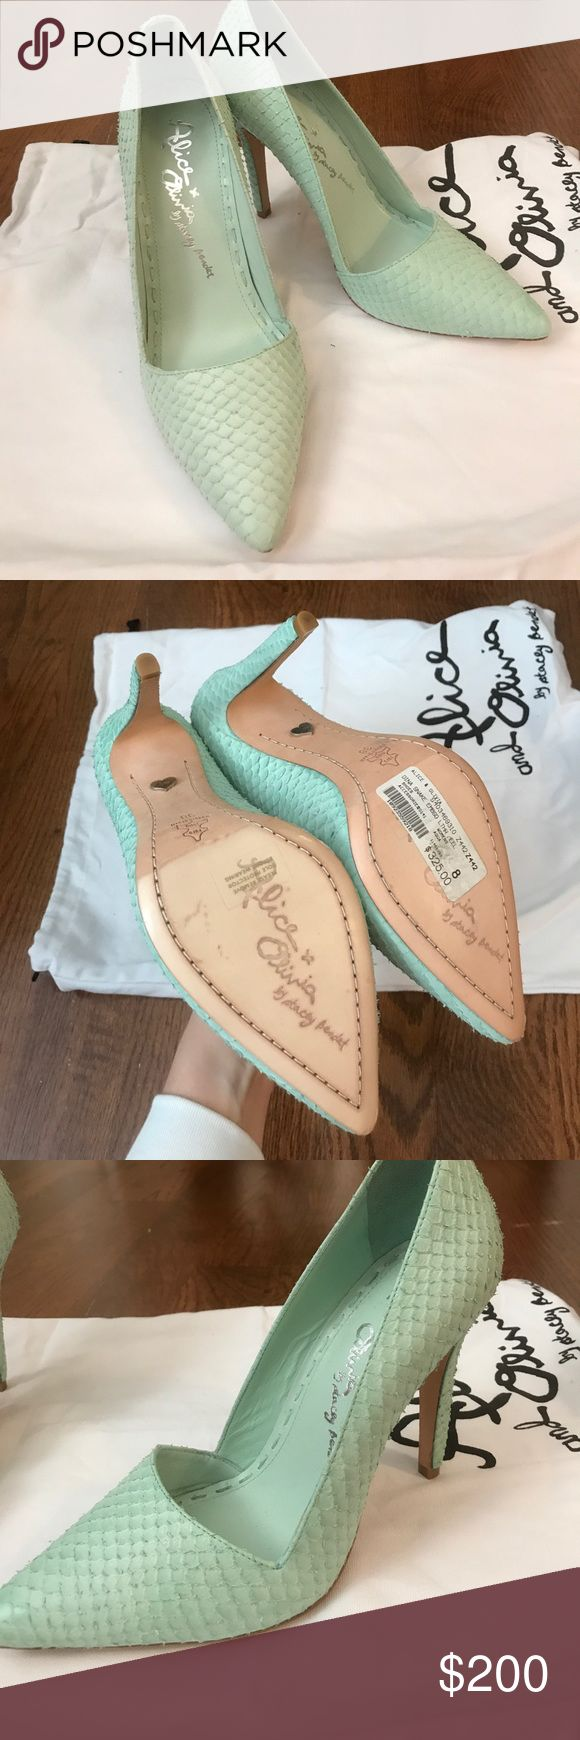 NWT Alice and Olivia Dina aqua heels! Beautiful aqua snake-skin textured Dina heels from Alice and Olivia. Size 38 Eu/size 8 US, never worn (I have wide feet and they never fit comfortably). Heel height 4.25 inches, excellent condition, with dust bag. Make me an offer! 💕 Alice & Olivia Shoes Heels